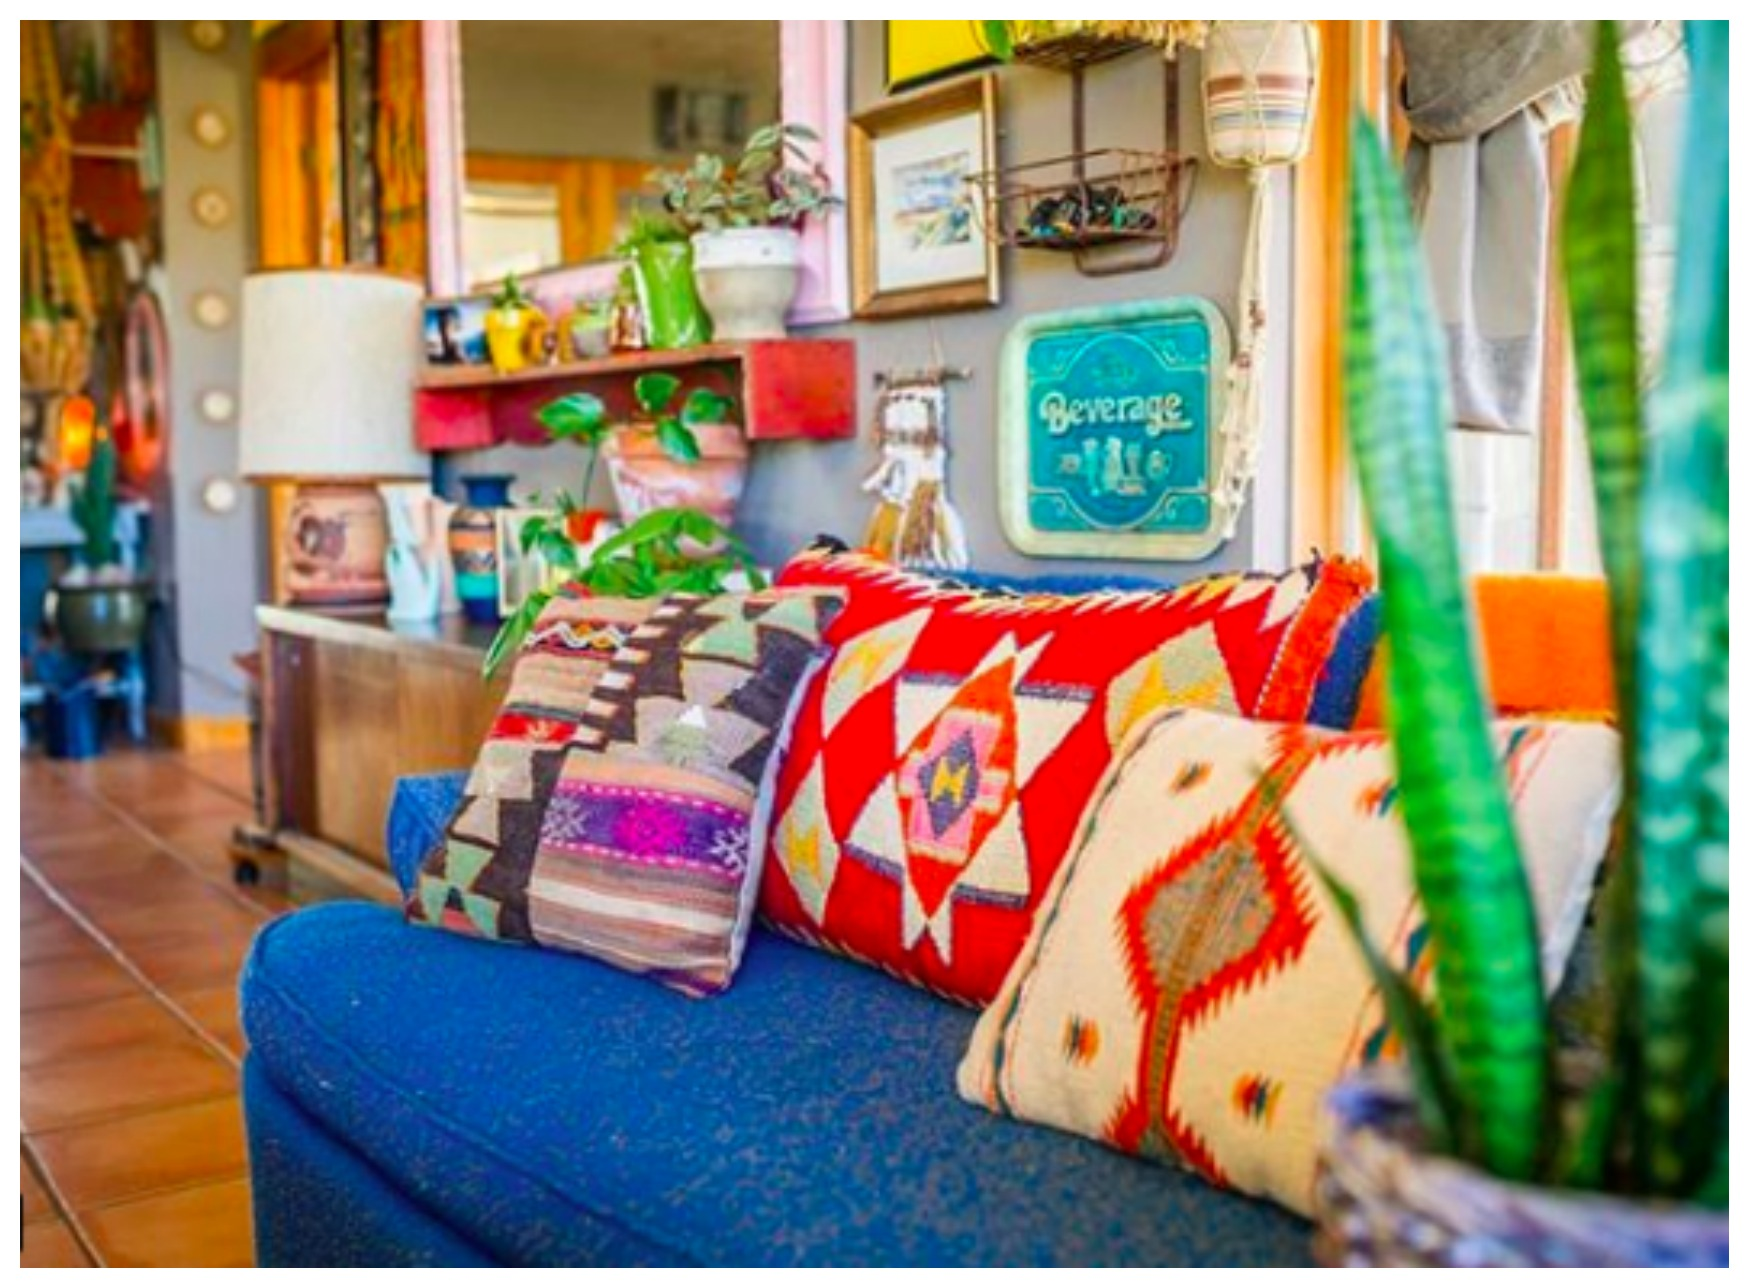 Home Tour:  Colorful Colorado Boho Mountainside Digs of Chasity and Derek